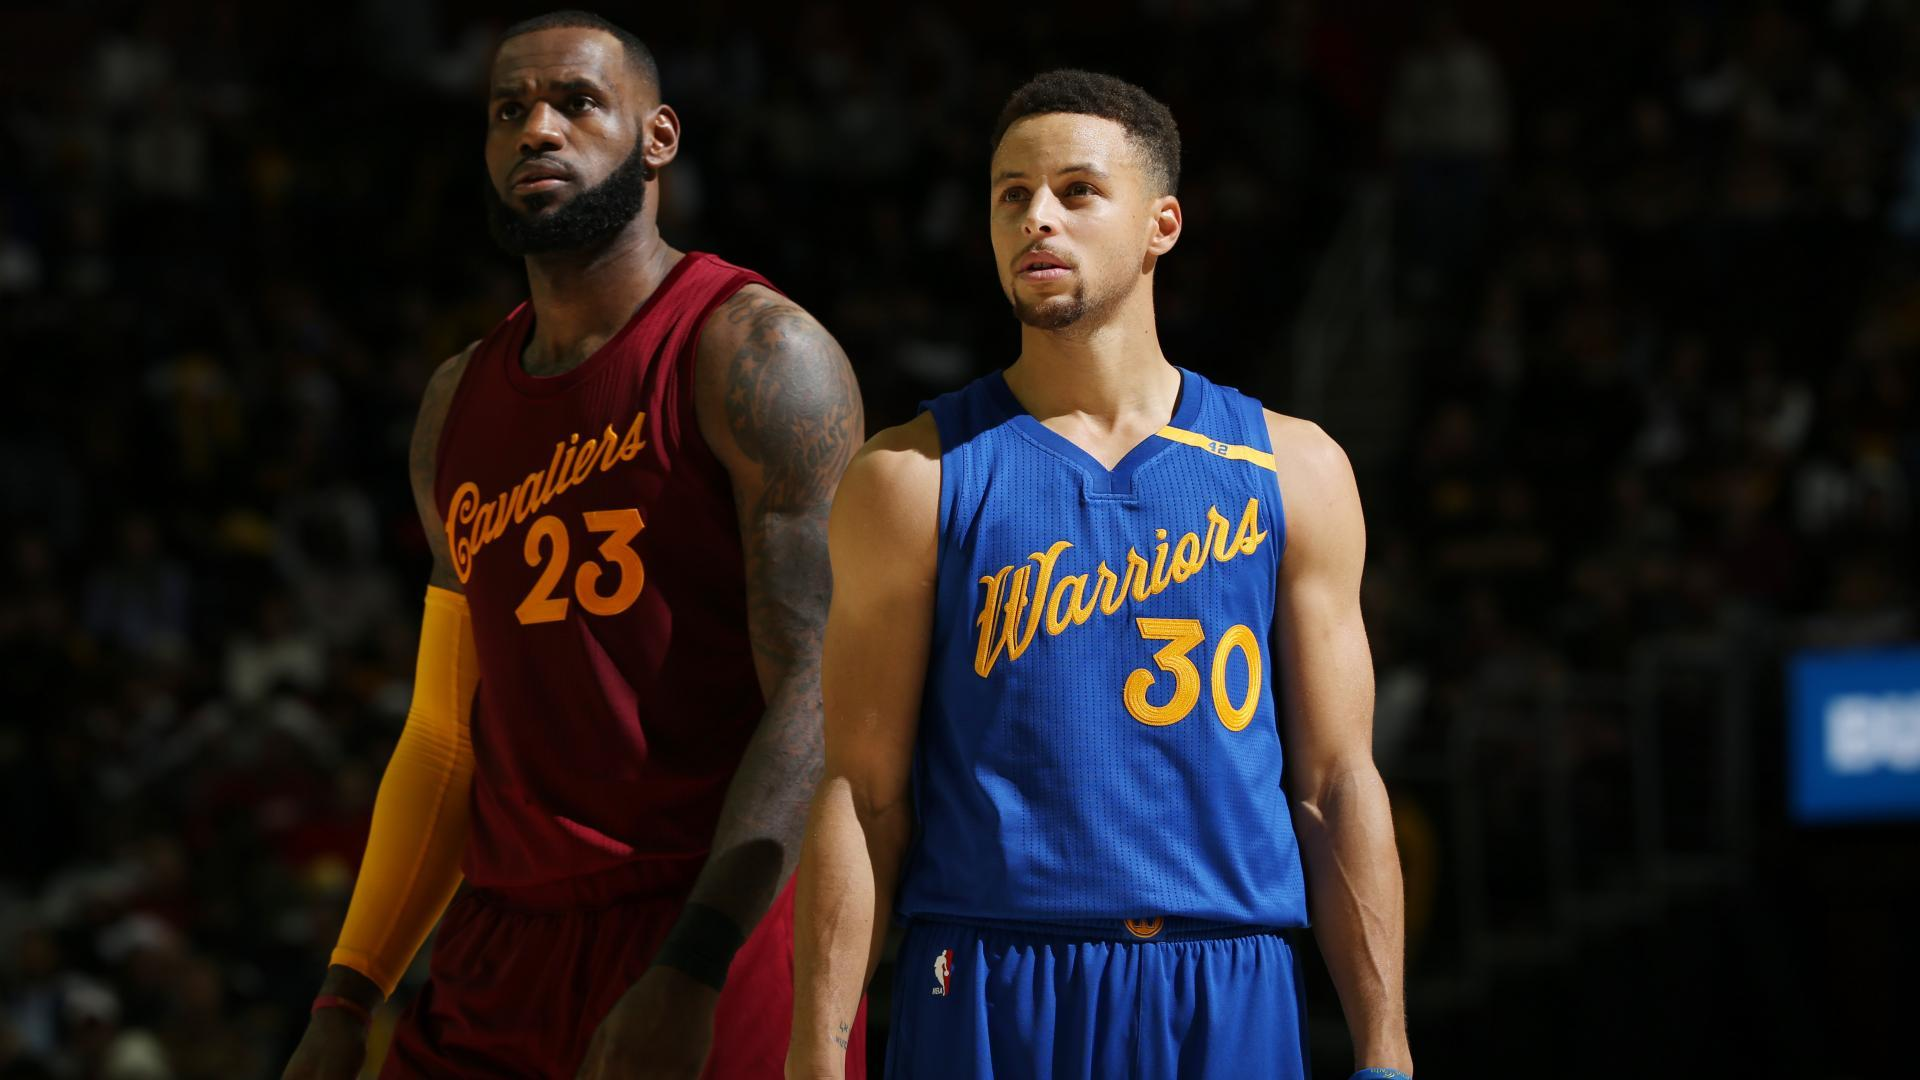 b0bddf2a048f Blogtable  What did we learn from the Warriors-Cavs Christmas Day ...